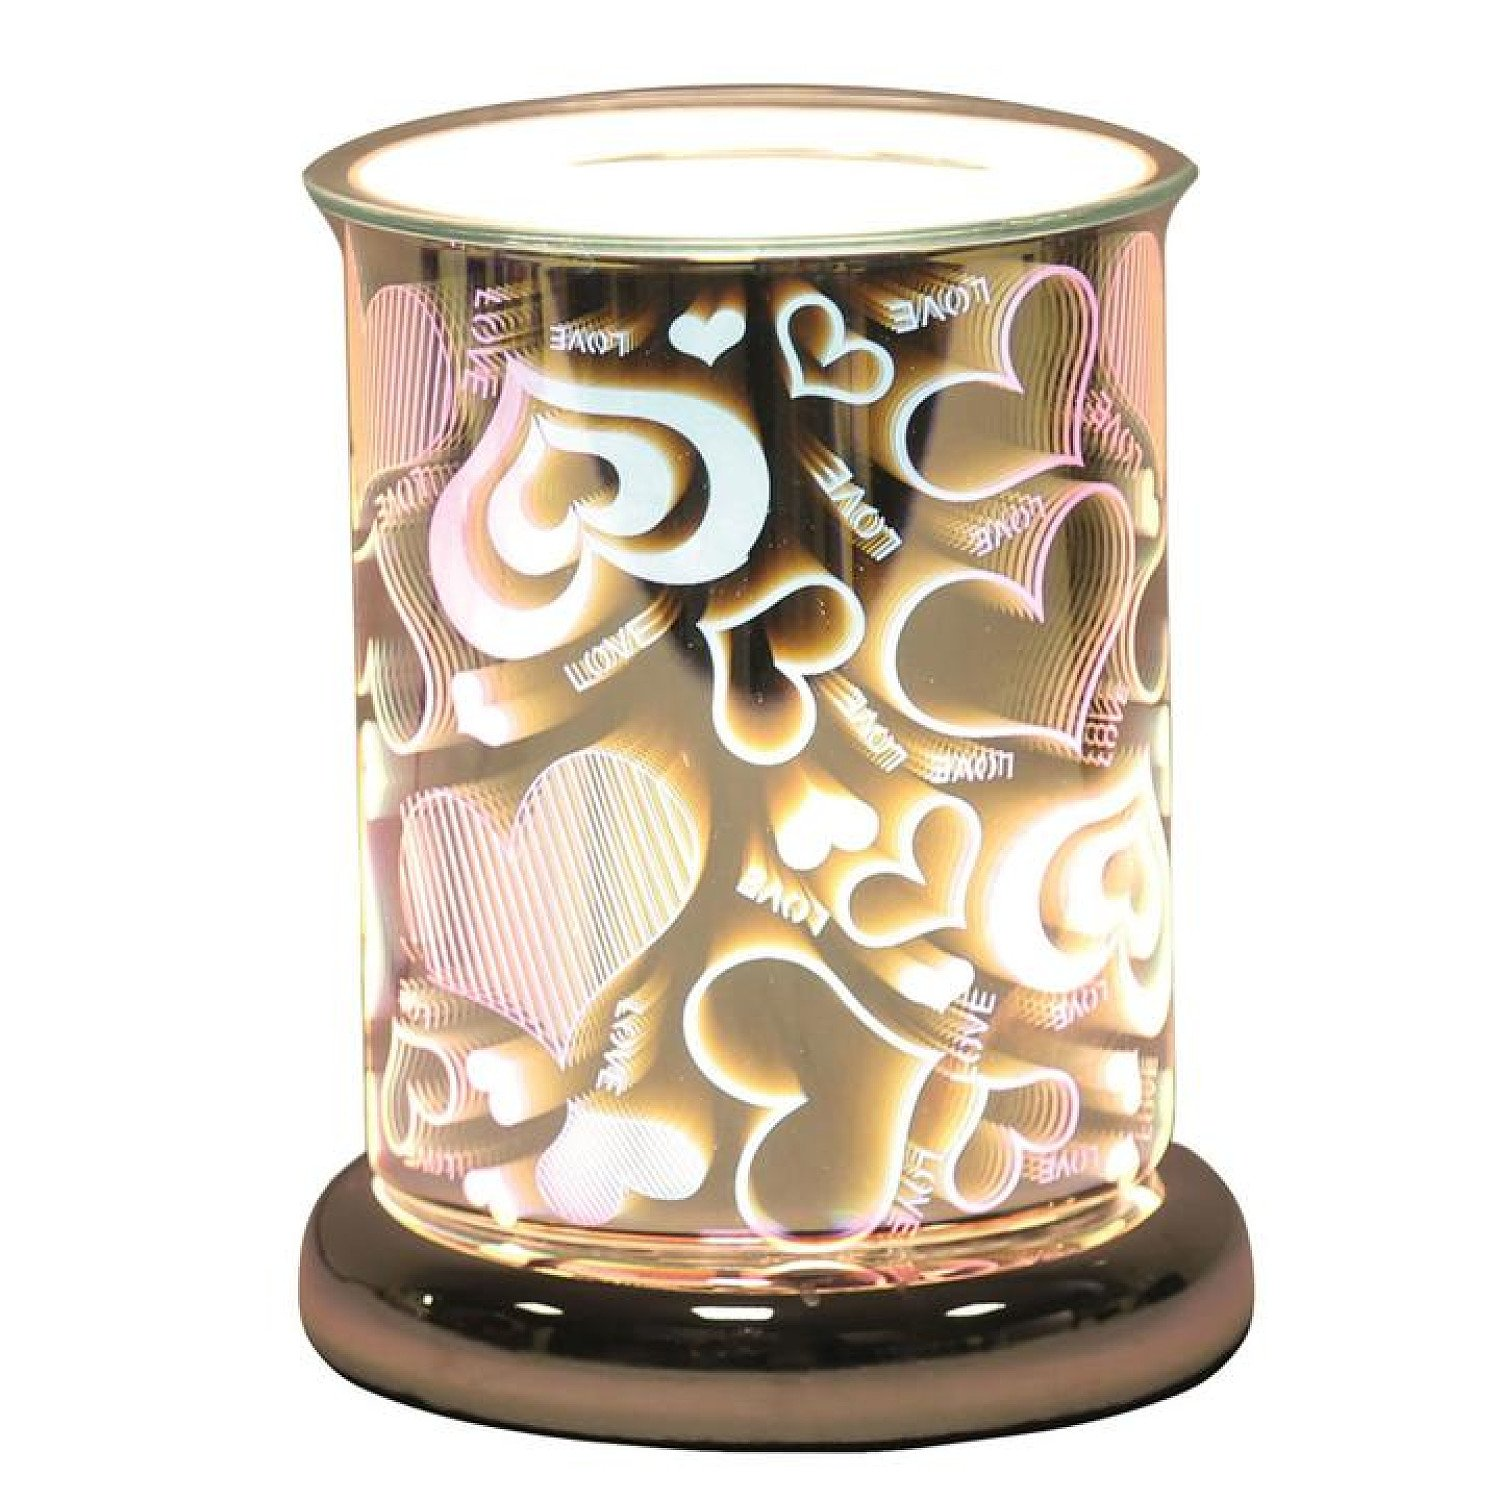 Love - Cylinder) Oval 3D Lights Scented Aroma Wax Burner Electric Touch Lamp